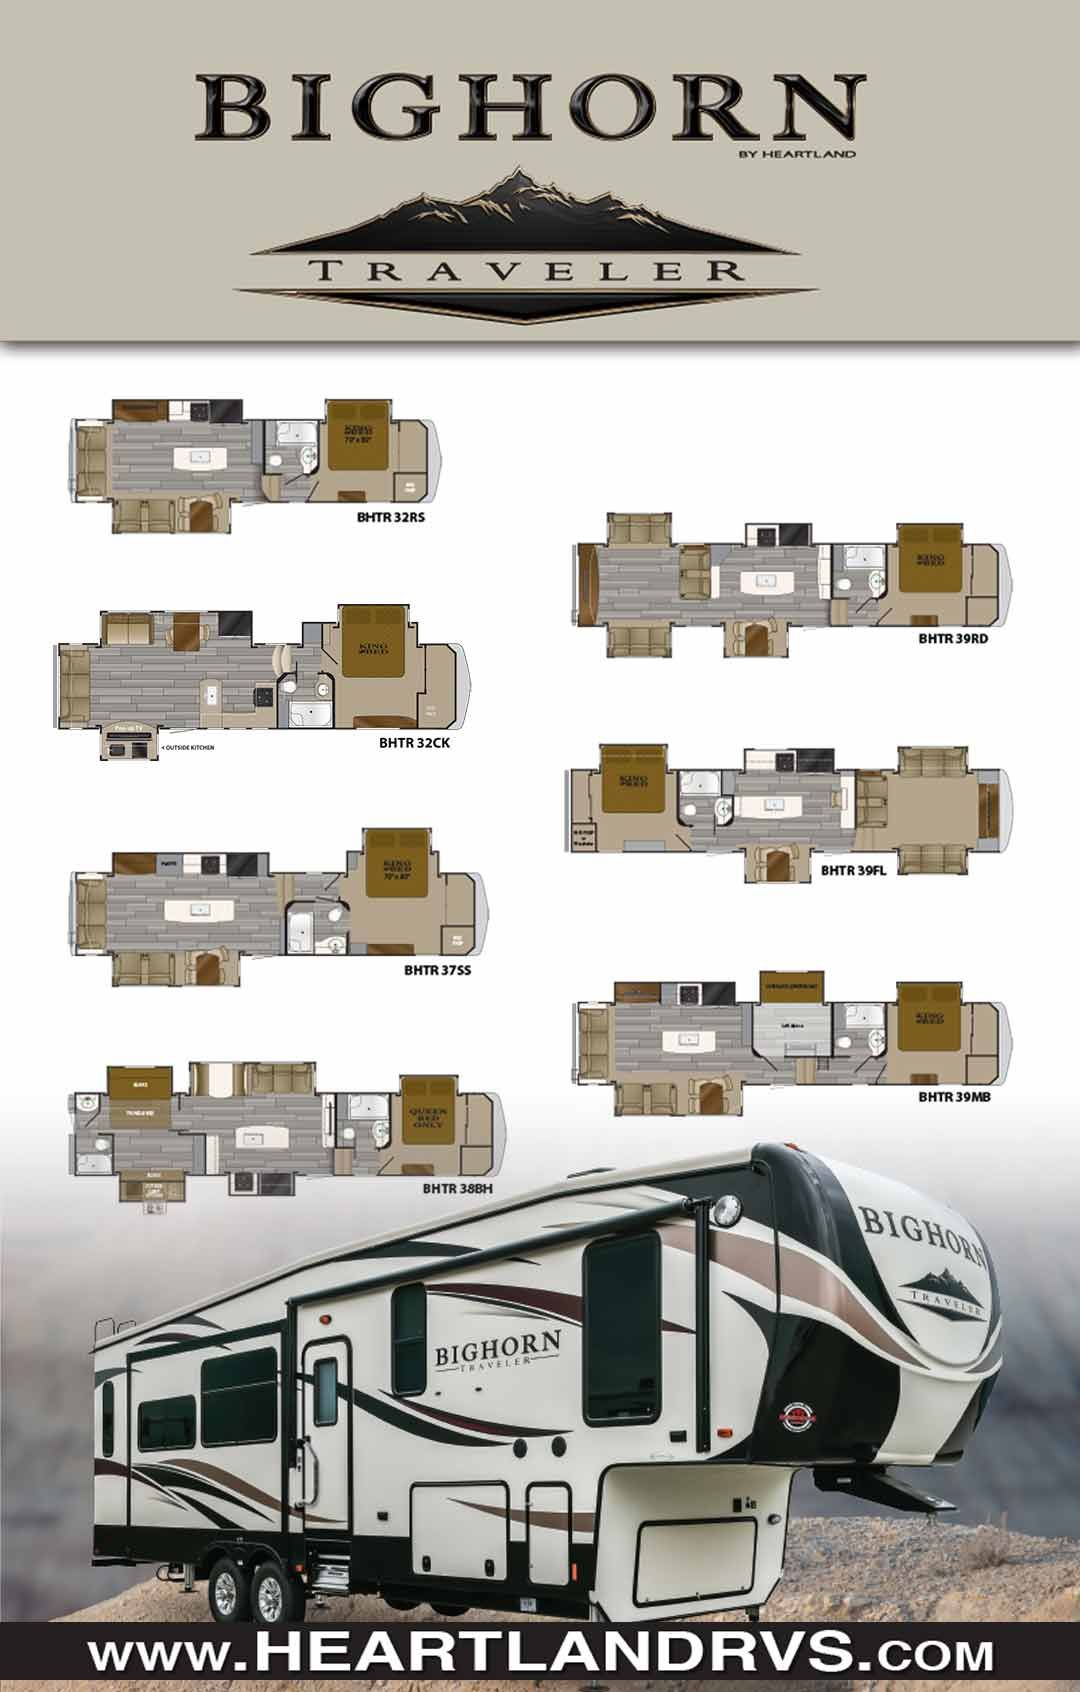 Pin On Bighorn And Bighorn Traveler Best Selling 5th Wheel